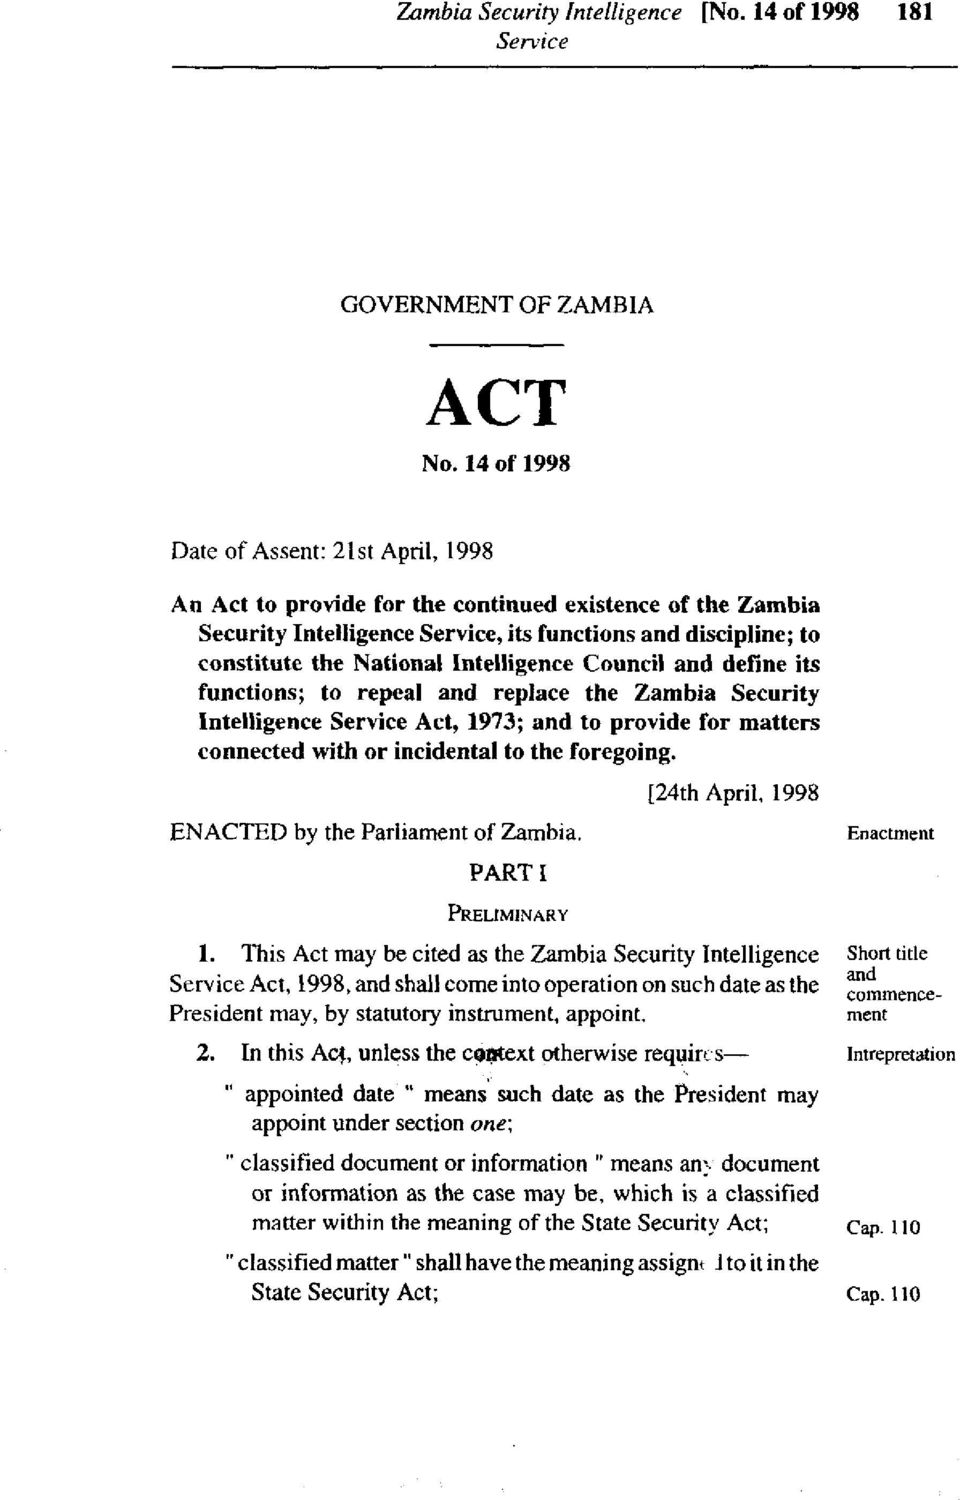 Council and define its functions; to repeal and replace the Zambia Security Intelligence Act, 1973; and to provide for matters connected with or incidental to the foregoing.